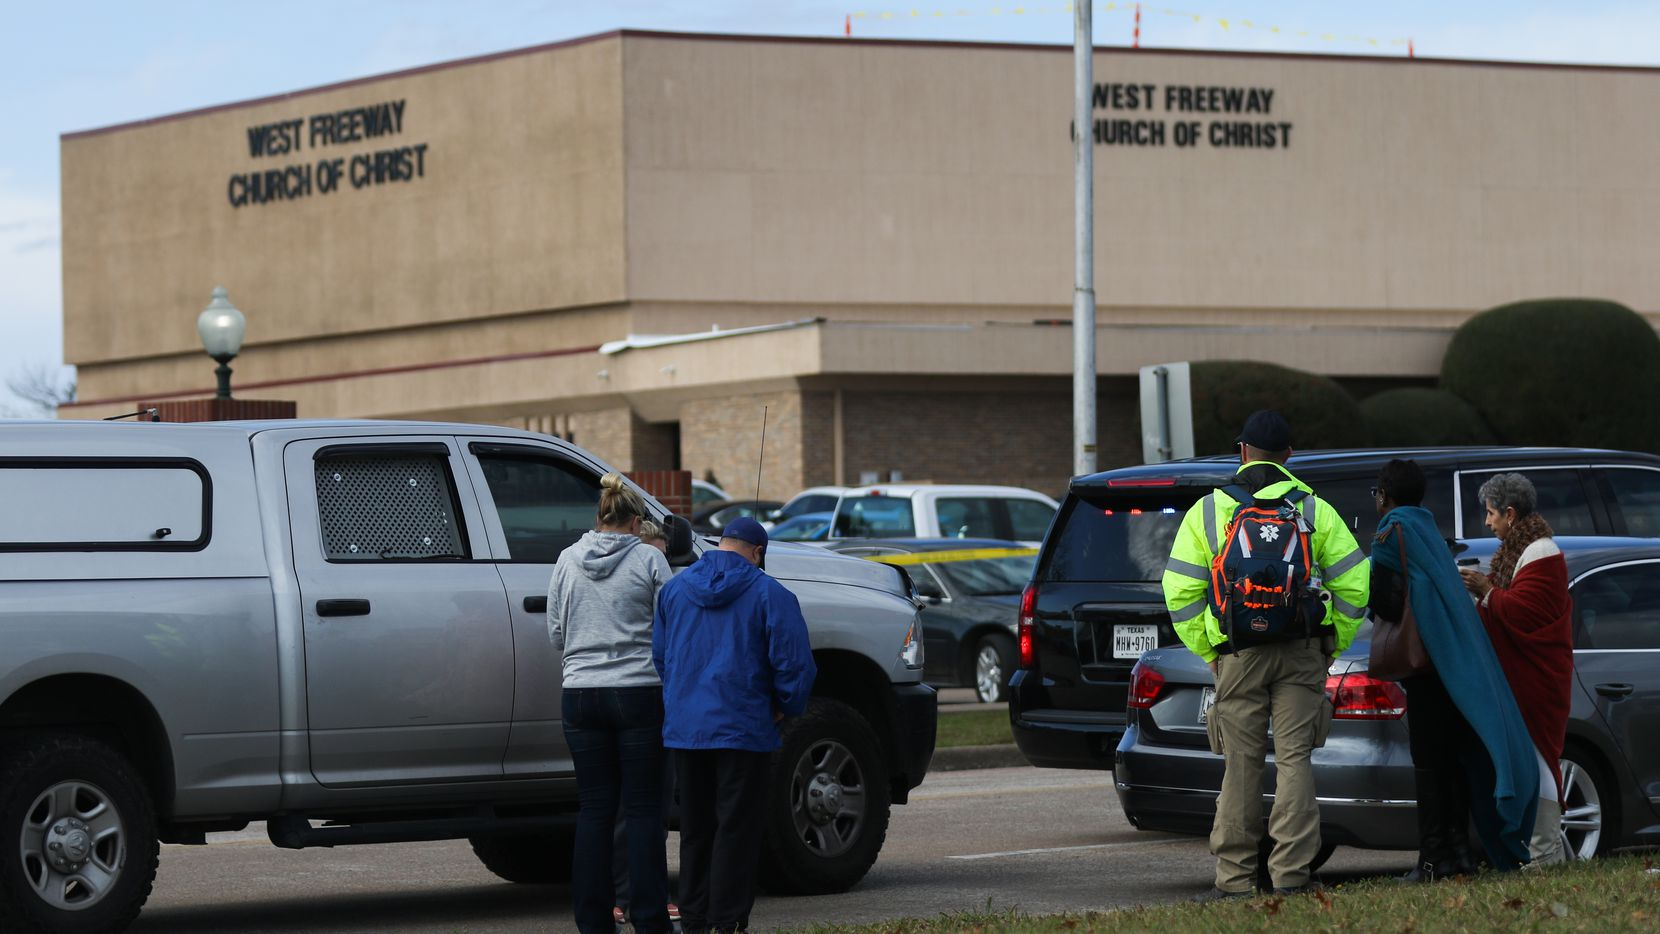 People gather outside the West Freeway Church of Christ in White Settlement on Sunday, where a gunman opened fire, killing one person and critically wounding another before churchgoers fatally shot the gunman.